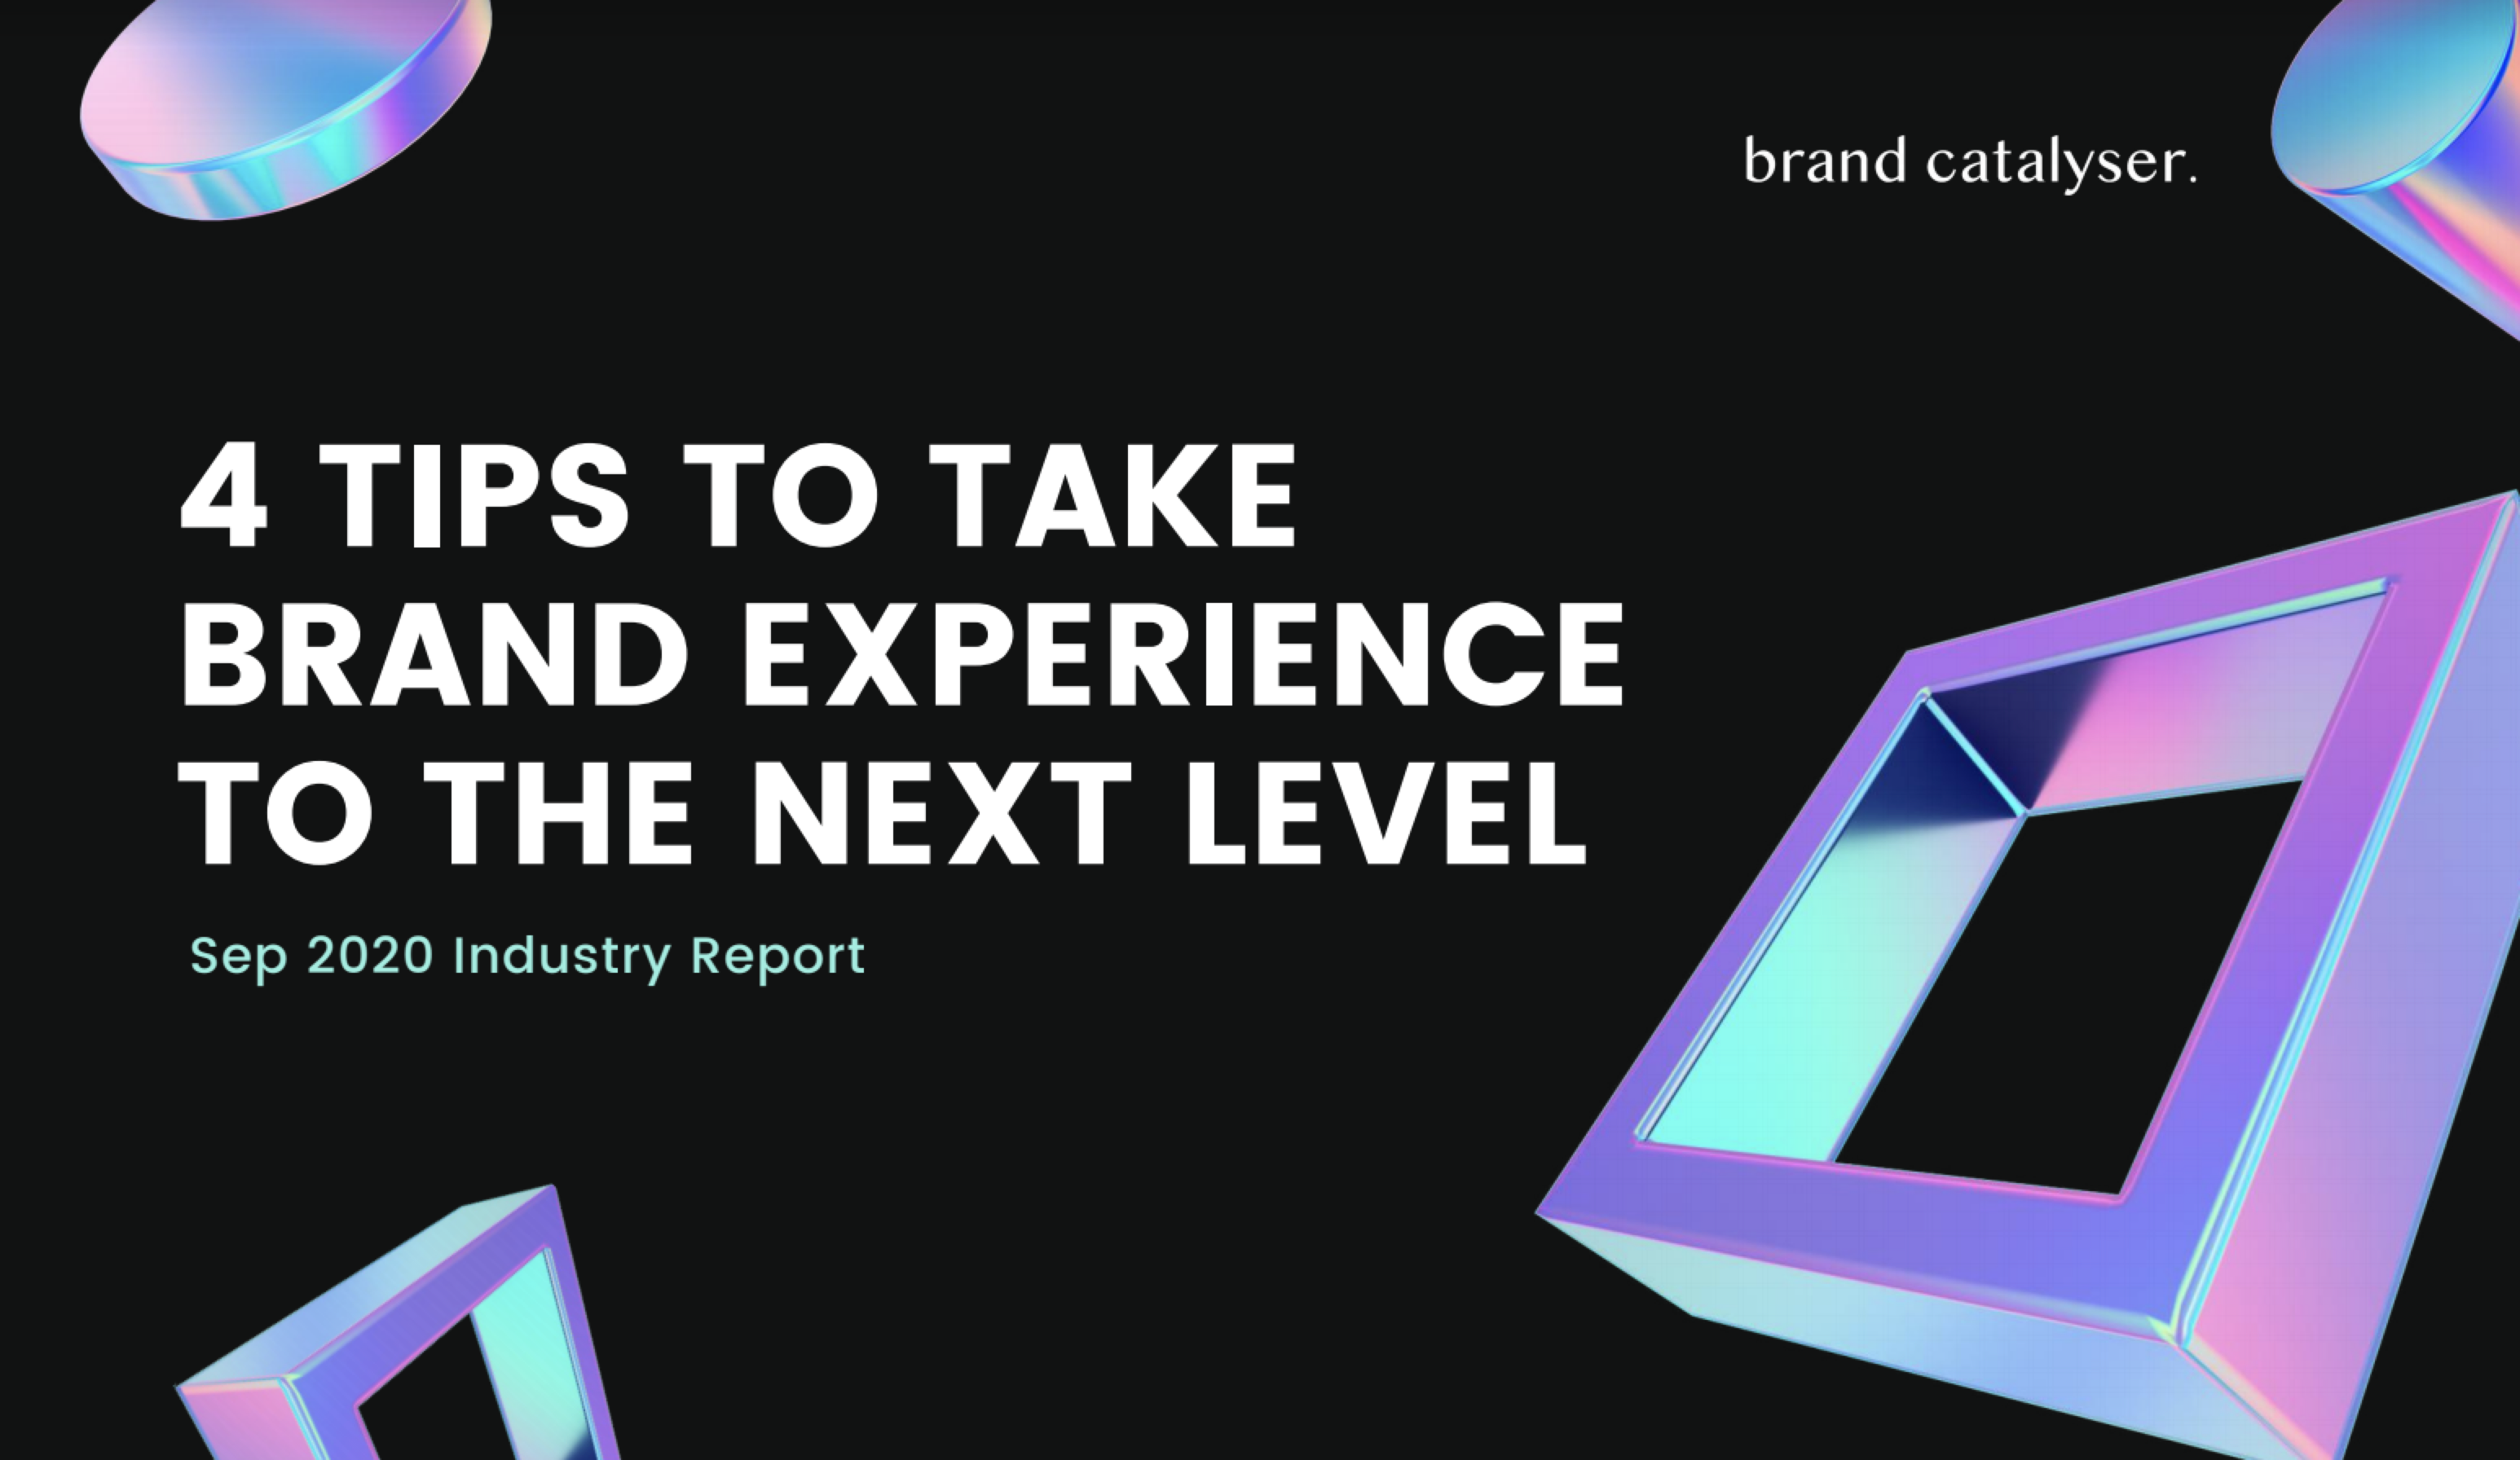 4 Tips To Take Brand Experience To The Next Level